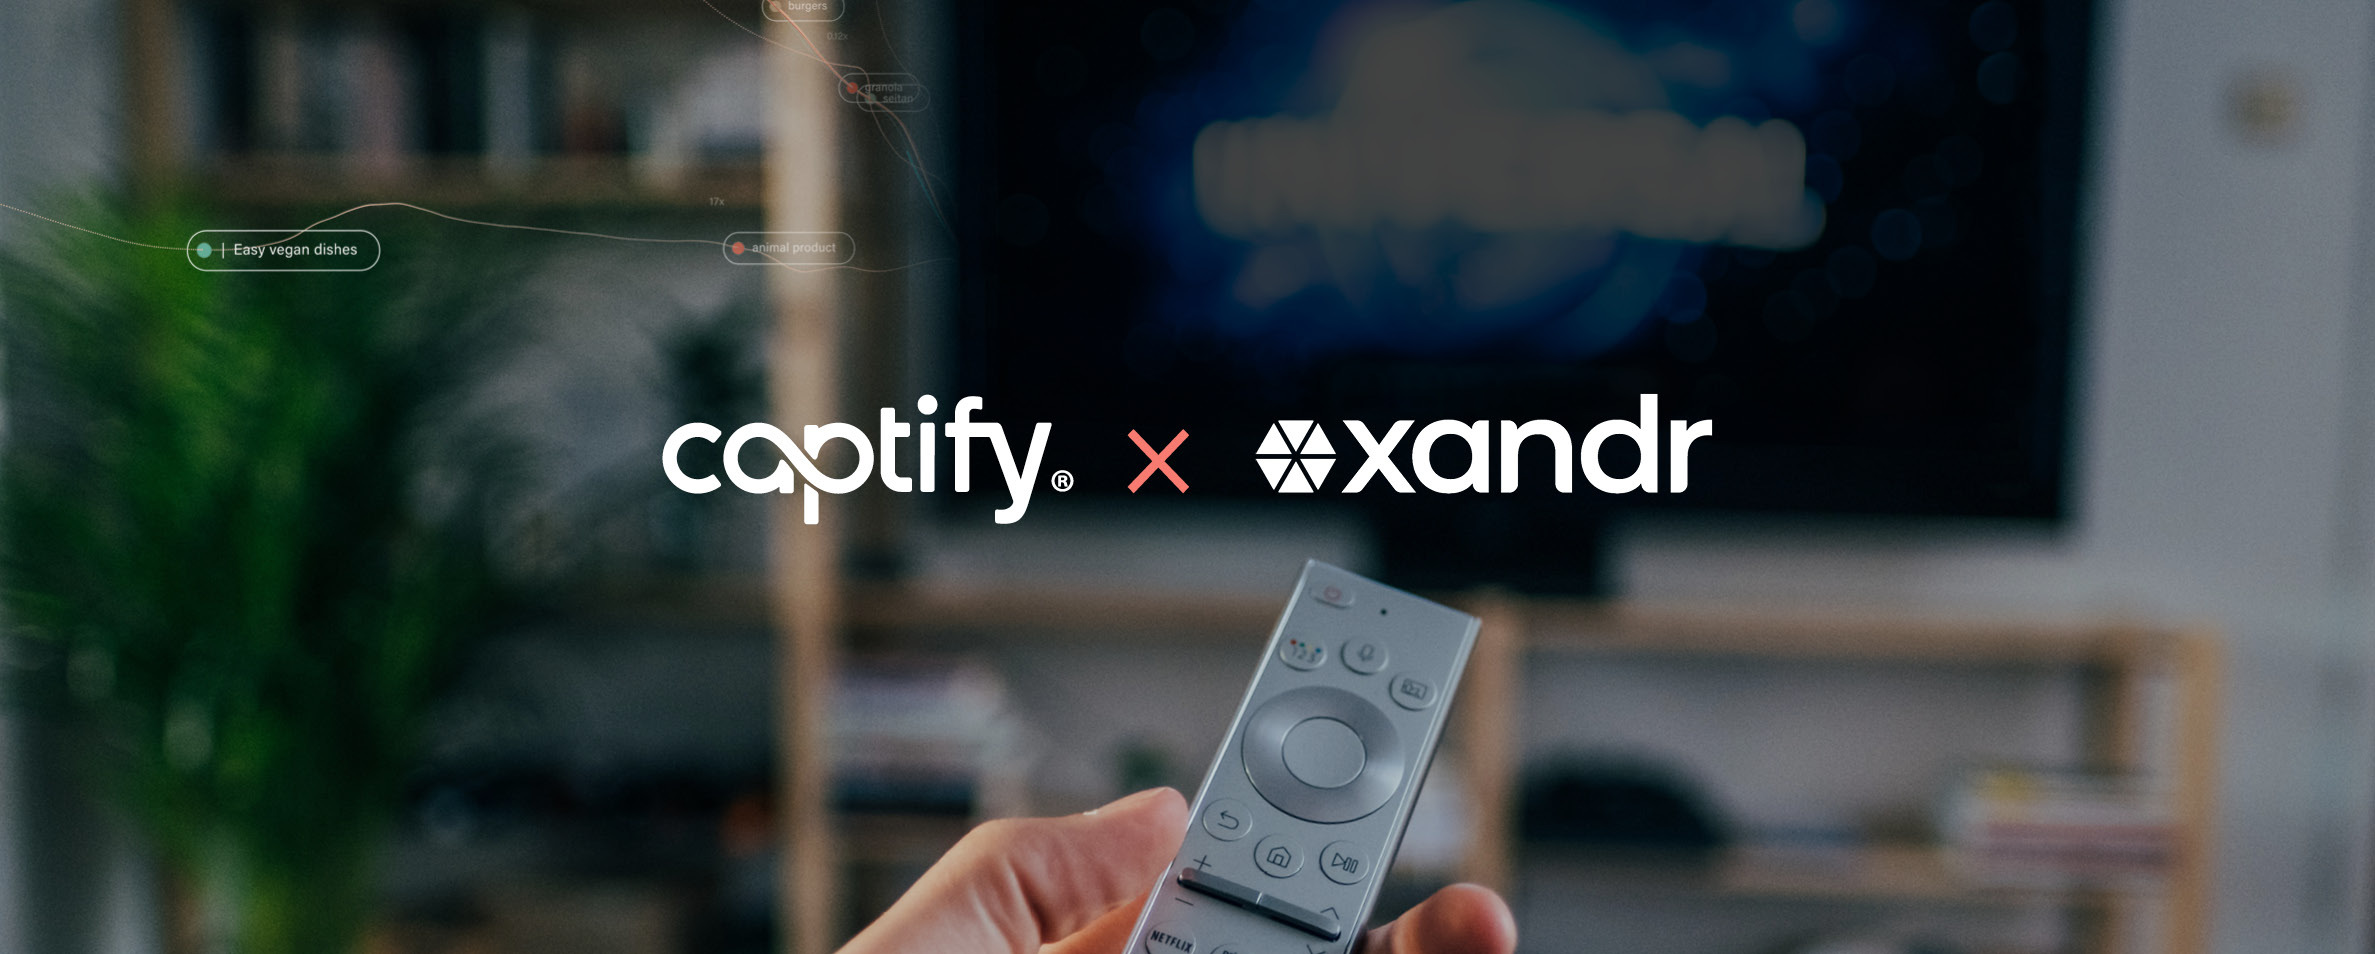 Captify Uses Xandr Curate to Provide Advertisers with Real-Time, Search-Powered Audiences At-Scale across CTV and Video